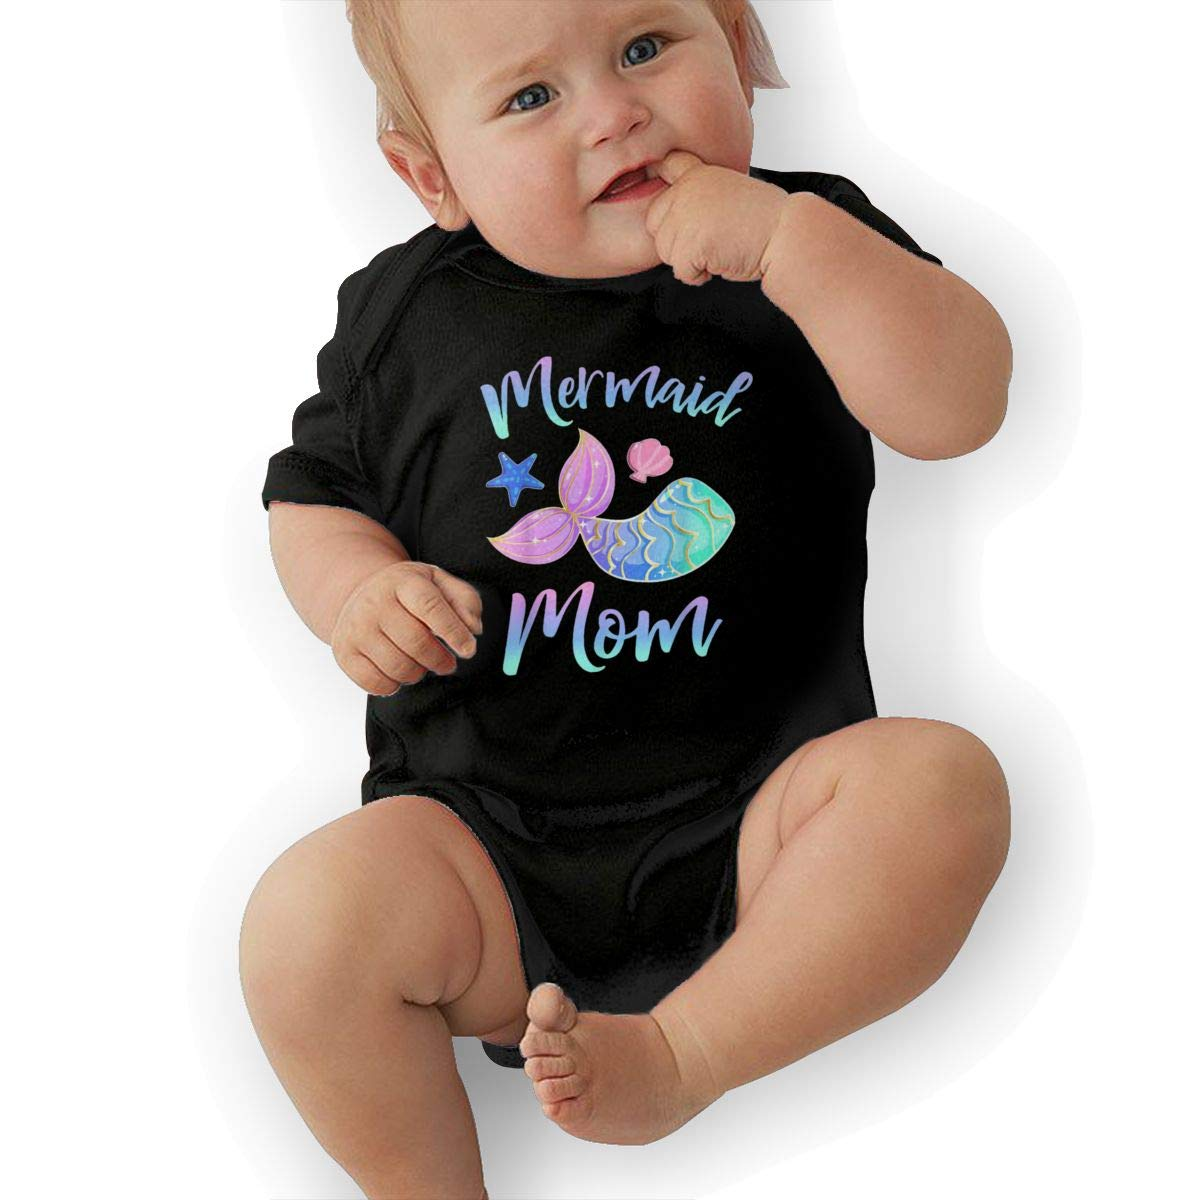 Mermaid Mom Baby Boys Girls Jumpsuit Overall Romper Bodysuit Summer Clothes Black 2